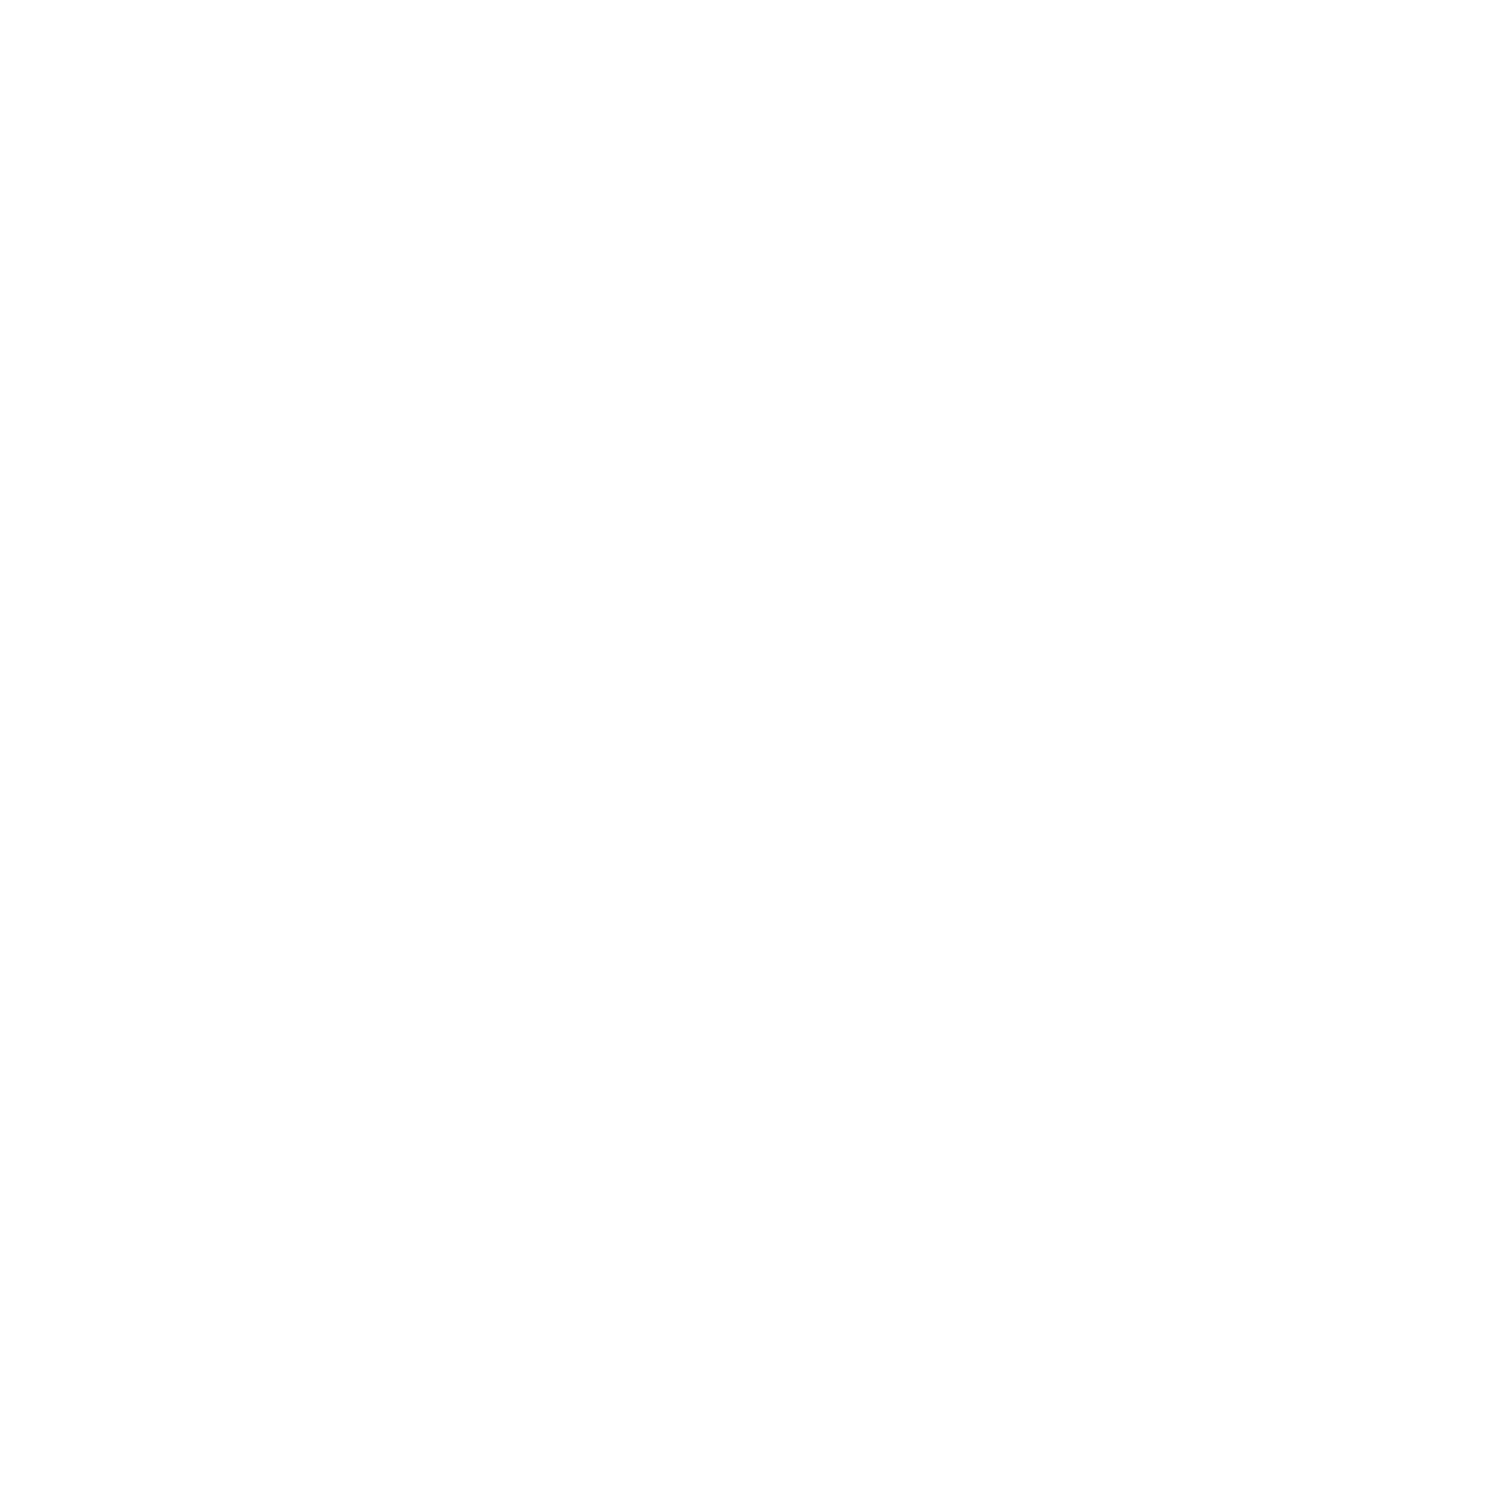 Murdered Abroad